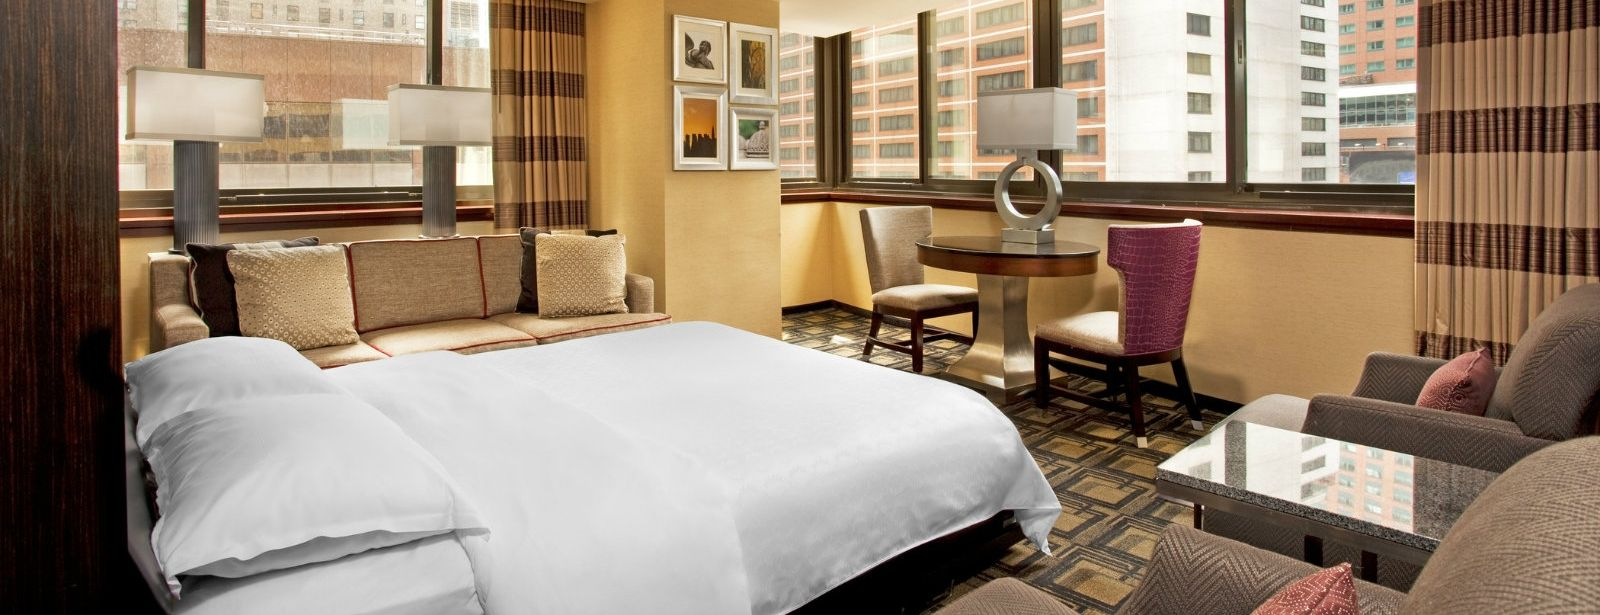 Family Accommodations at Sheraton New York Times Square Hotel